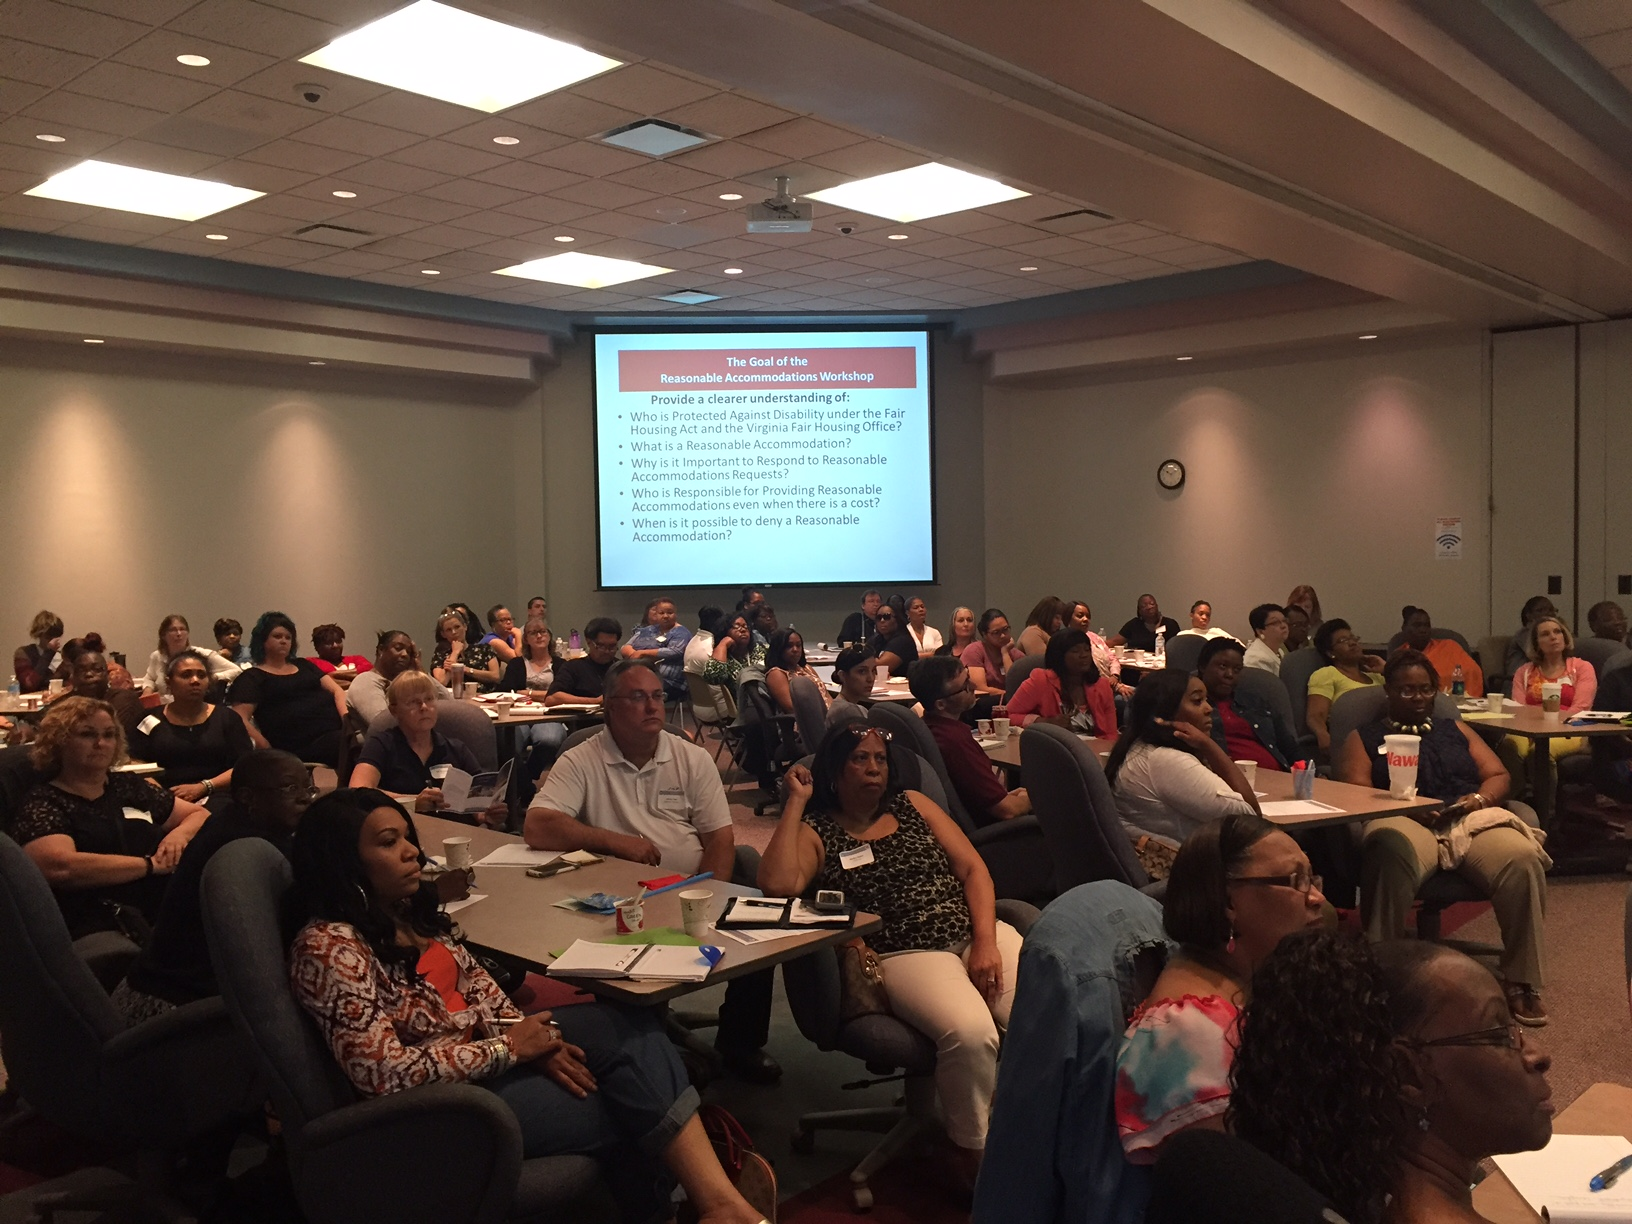 Capacity Crowd at the Understanding Reasonable Accommodations Workshop